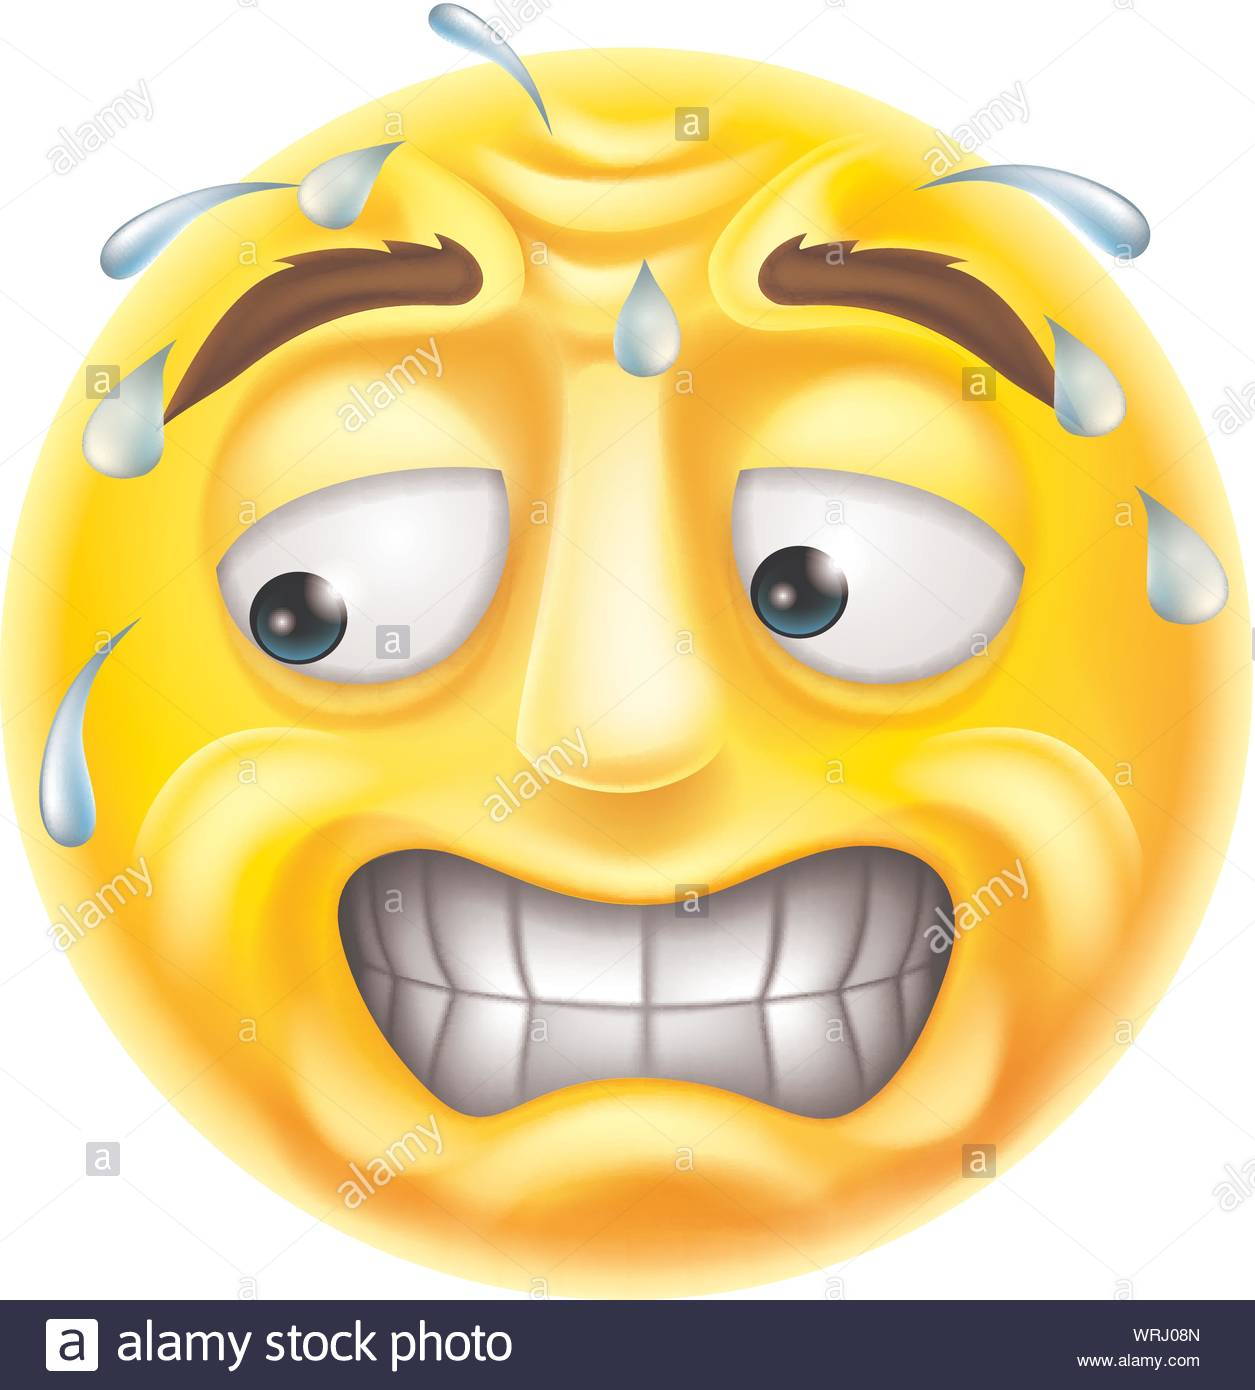 Scared Emoticon Emoji Stock Vector Image Art Alamy 👌⌨️ online emoji keyboard 2020 for 💻 pc, tablet and 📱 smartphone with 3,304 emojis to get emoji now and use them on your favorite social media platforms and apps, in emails or blog posts. https www alamy com scared emoticon emoji image272687989 html